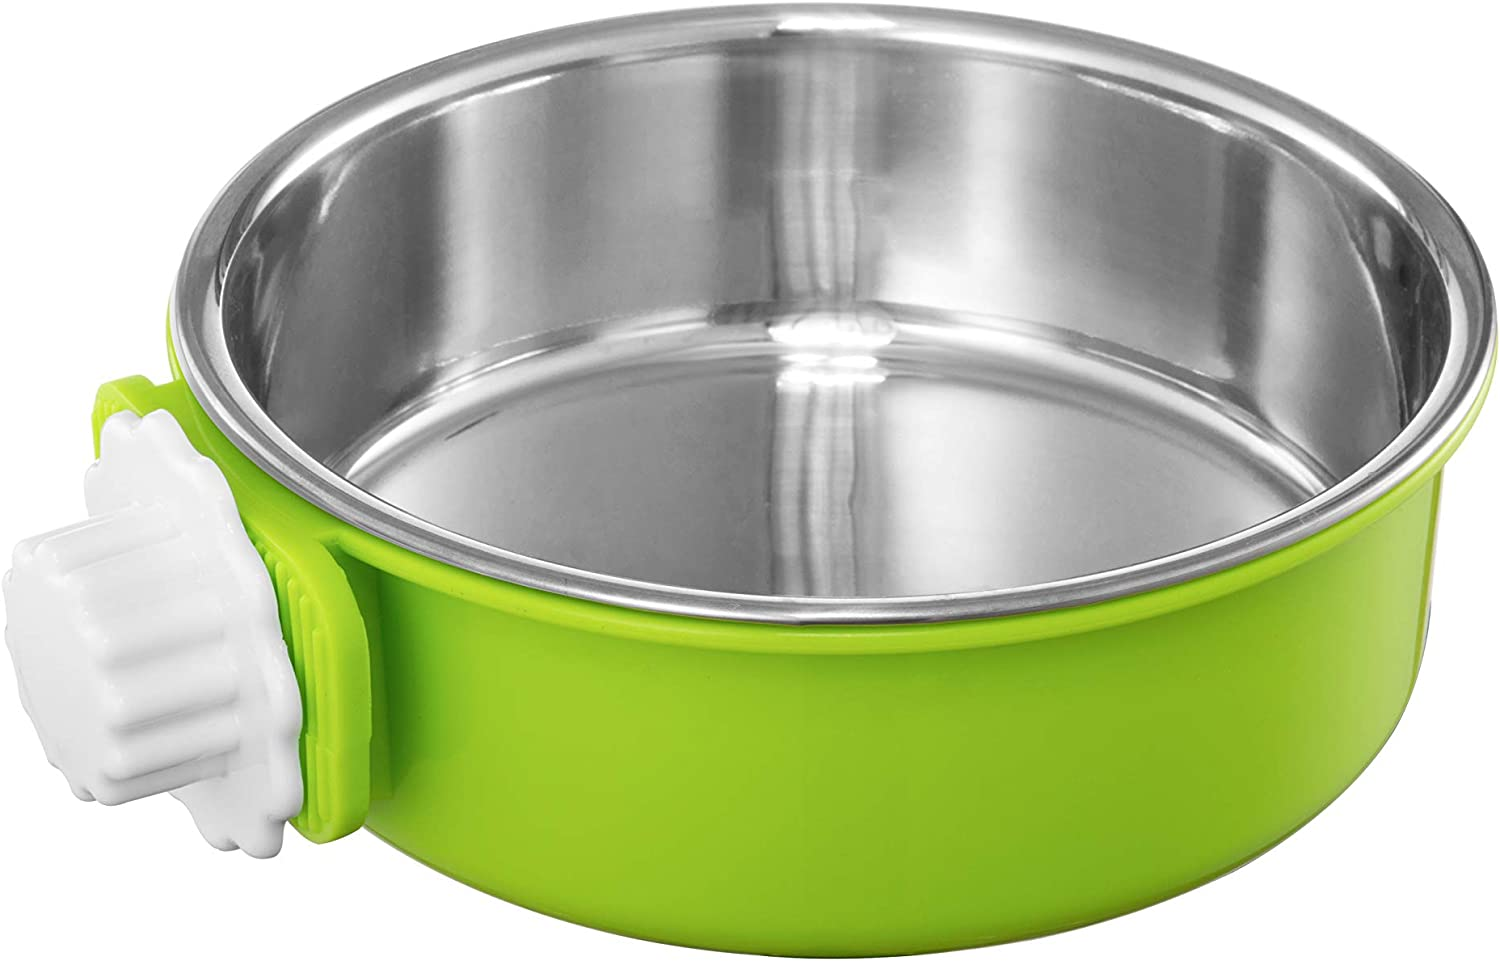 Flymoqi Crate Dog Bowl,Stainless Steel Removable Water Food Feeder Bows Cage Coop Cup for Dogs,Cats,Birds,Small Animals,20 oz